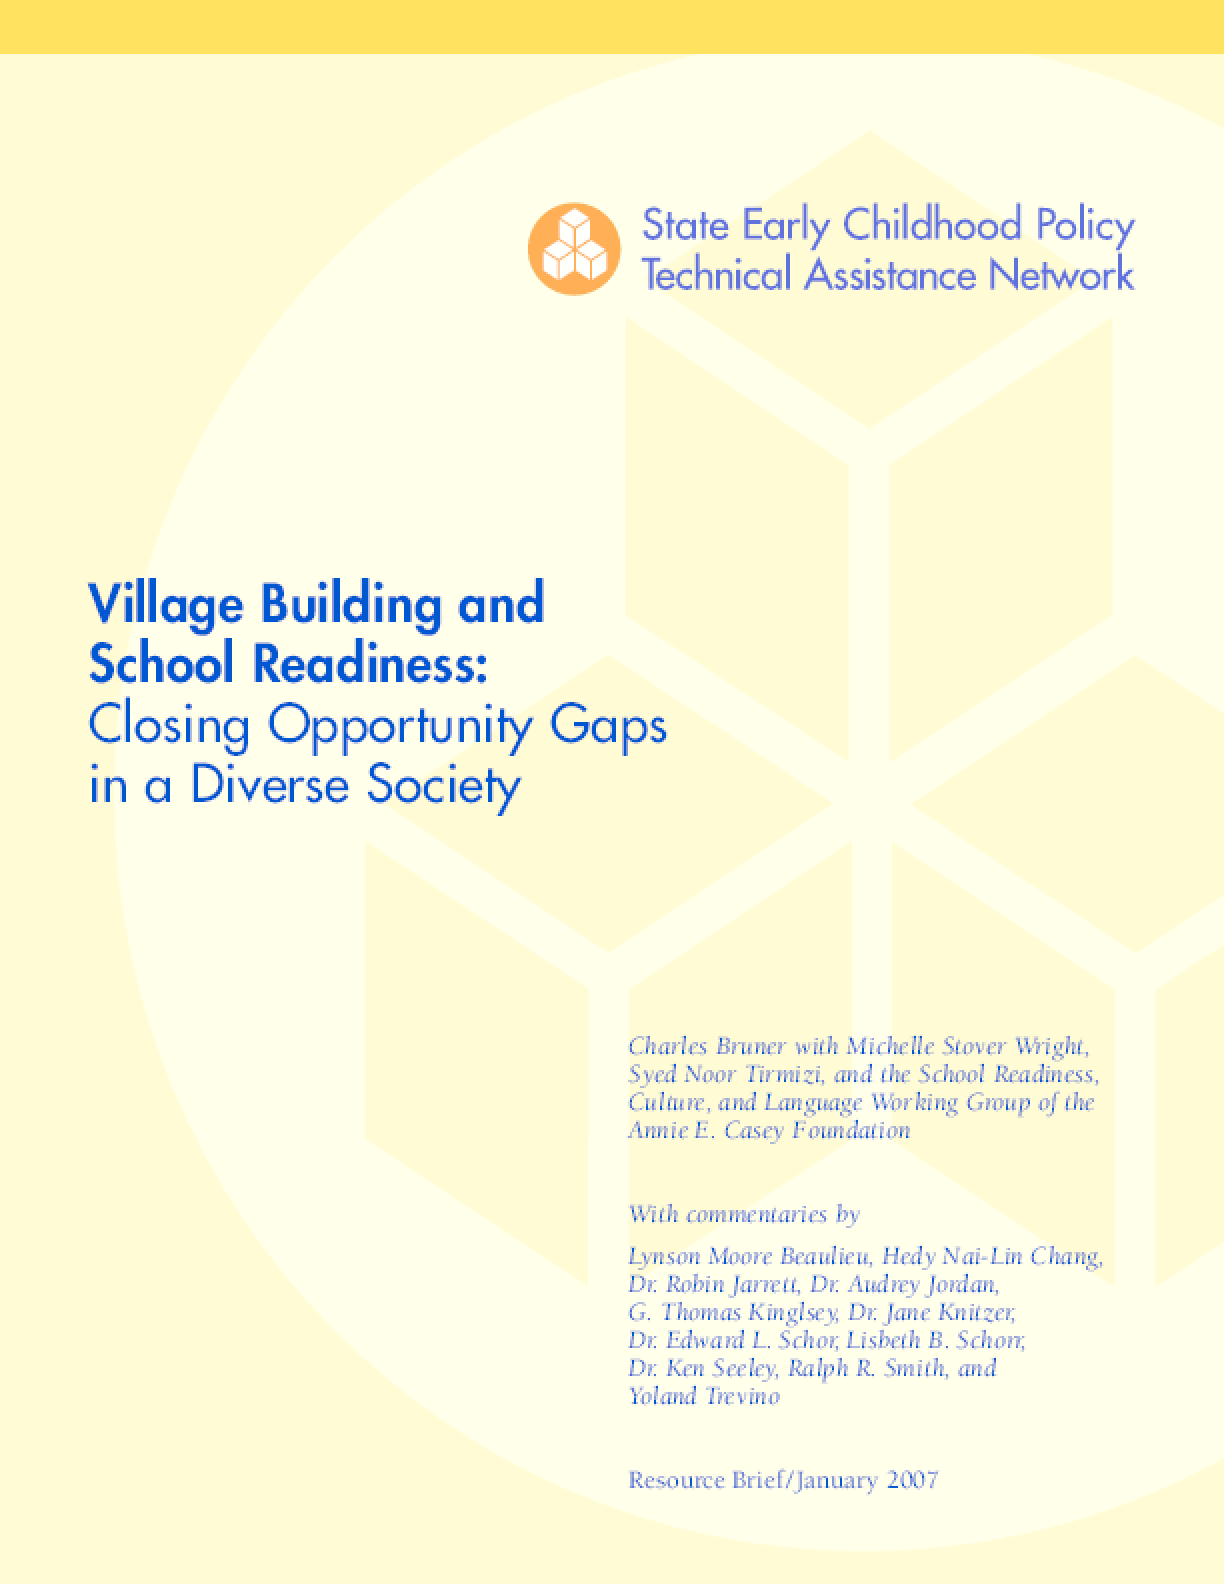 Village Building and School Readiness: Closing Opportunity Gaps in a Diverse Society